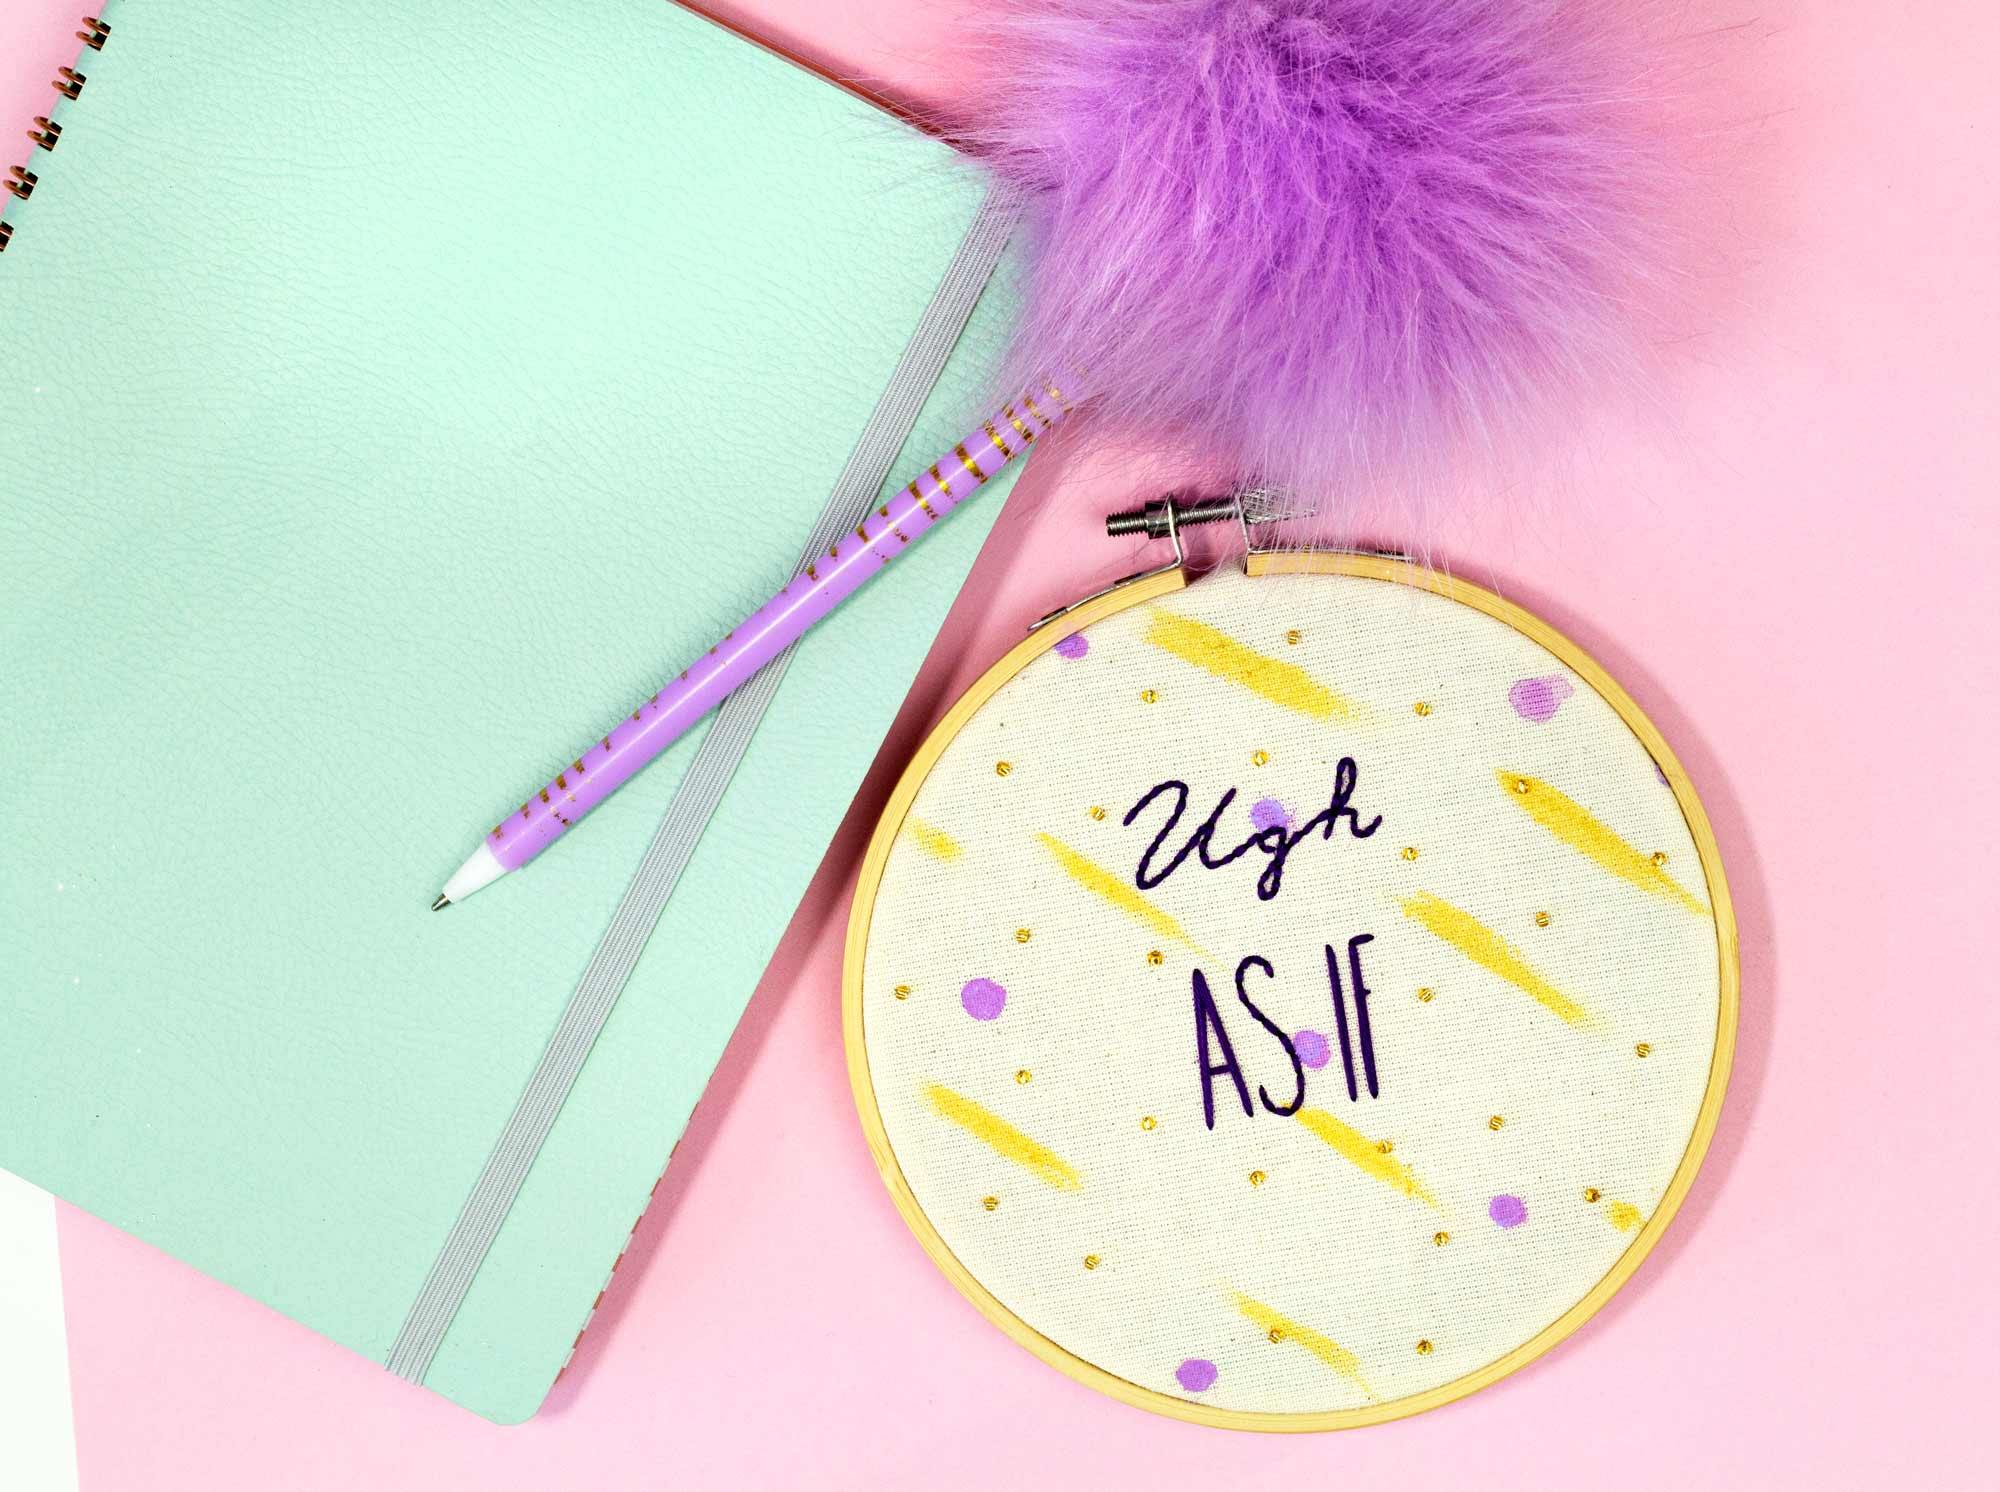 Ugh As If - Cher Clueless Embroidery Hoop | The Femme Bohemian